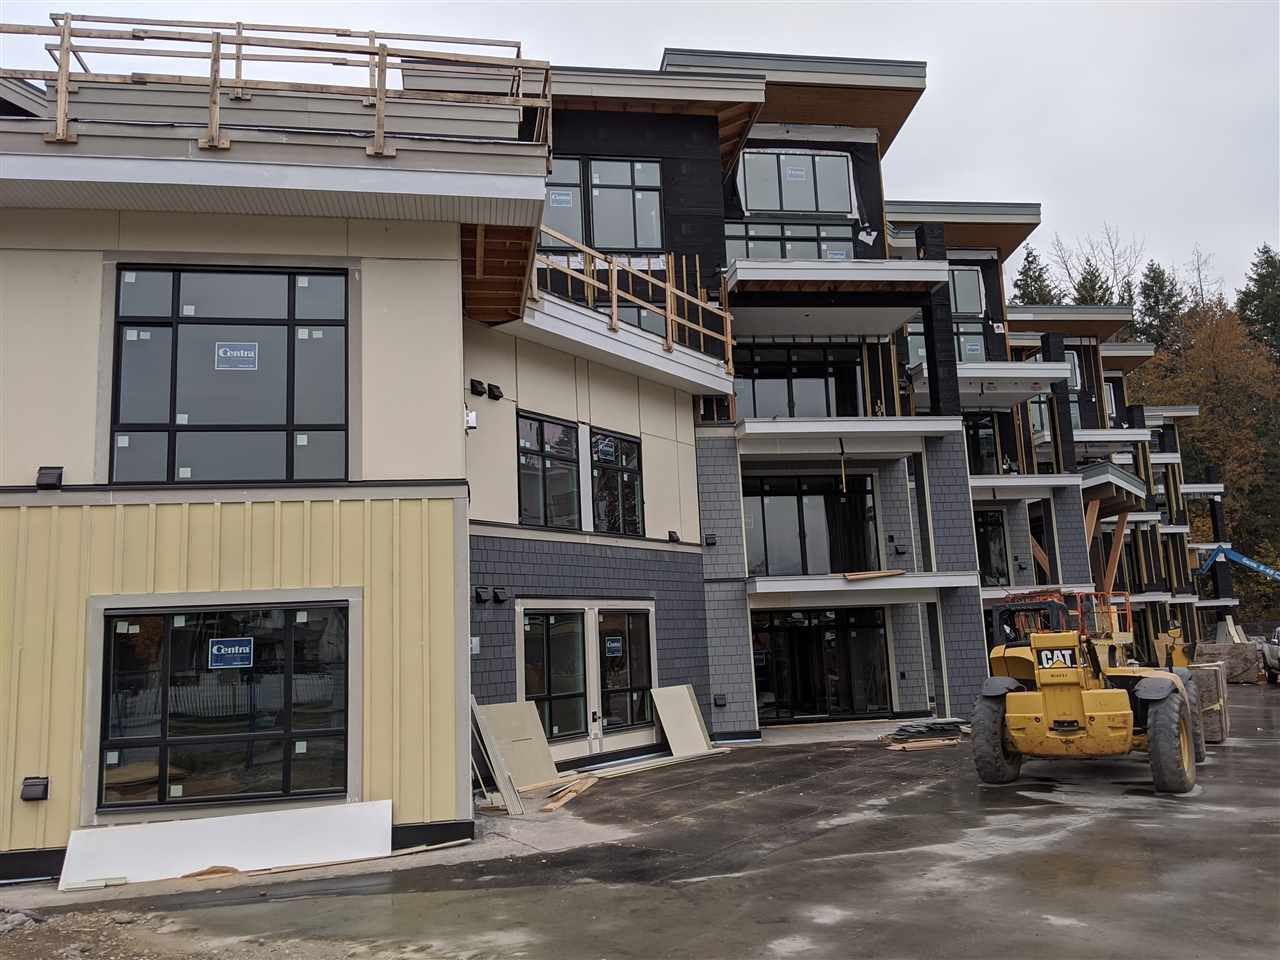 """Main Photo: 404 5380 TYEE  (PHASE 2) Lane in Chilliwack: Vedder S Watson-Promontory Condo for sale in """"The Boardwalk Phase 2 at Rivers Edge"""" (Sardis)  : MLS®# R2420747"""